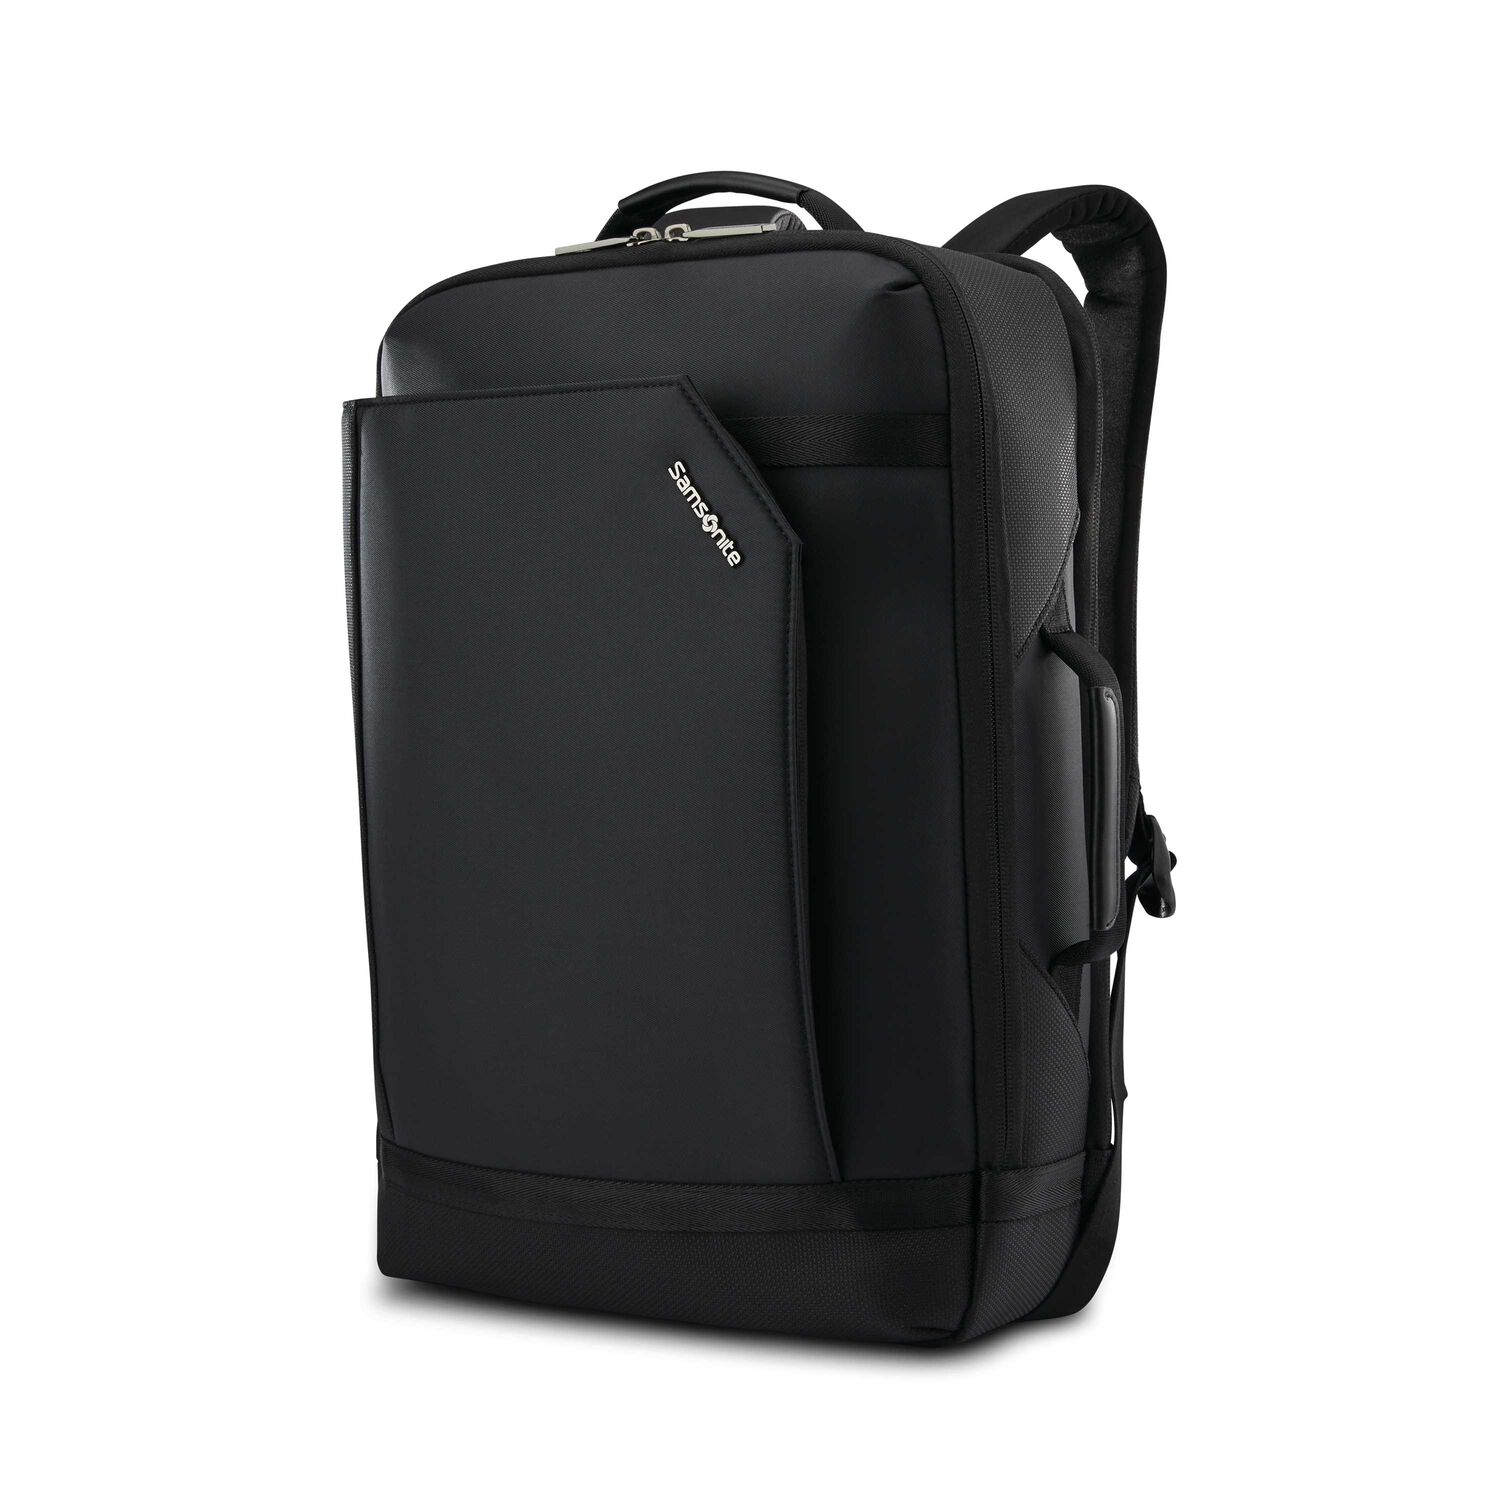 fc5e78d79 Samsonite Encompass Convertible Backpack in the color Black.